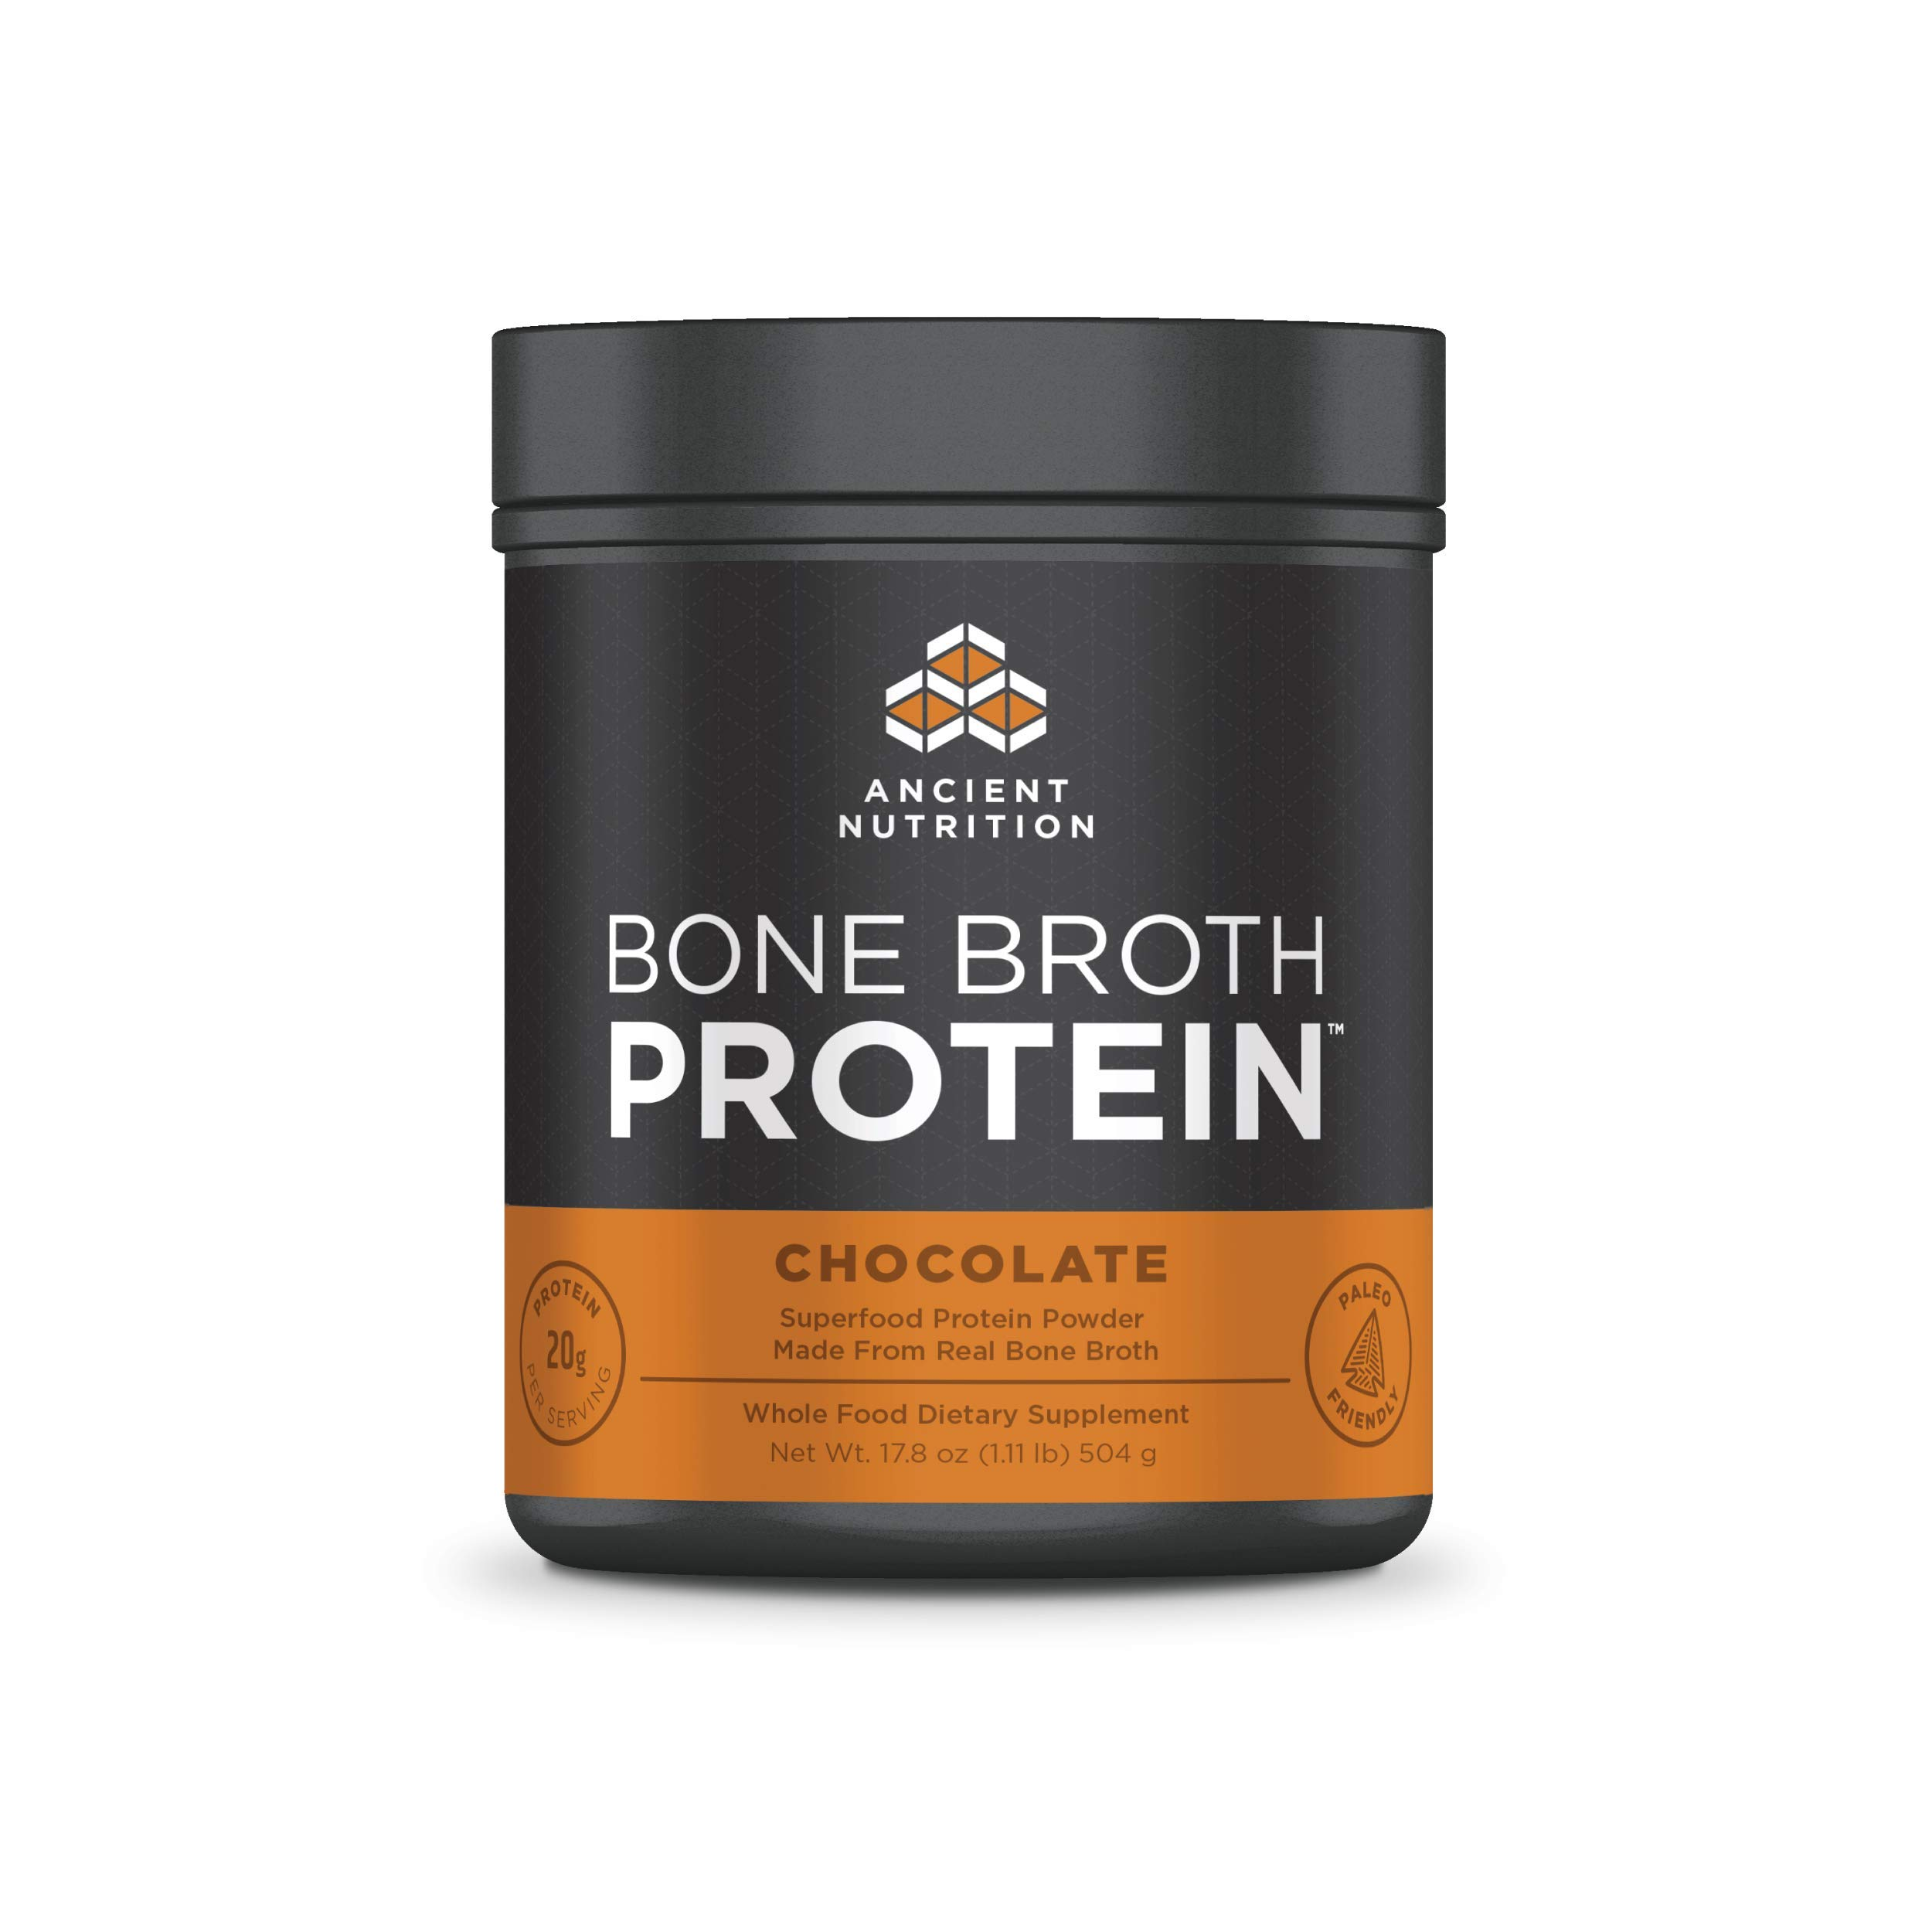 Ancient Nutrition Bone Broth Protein Powder, Chocolate - Dairy Free, Gluten Free and Paleo Friendly - 20 Servings by Ancient Nutrition